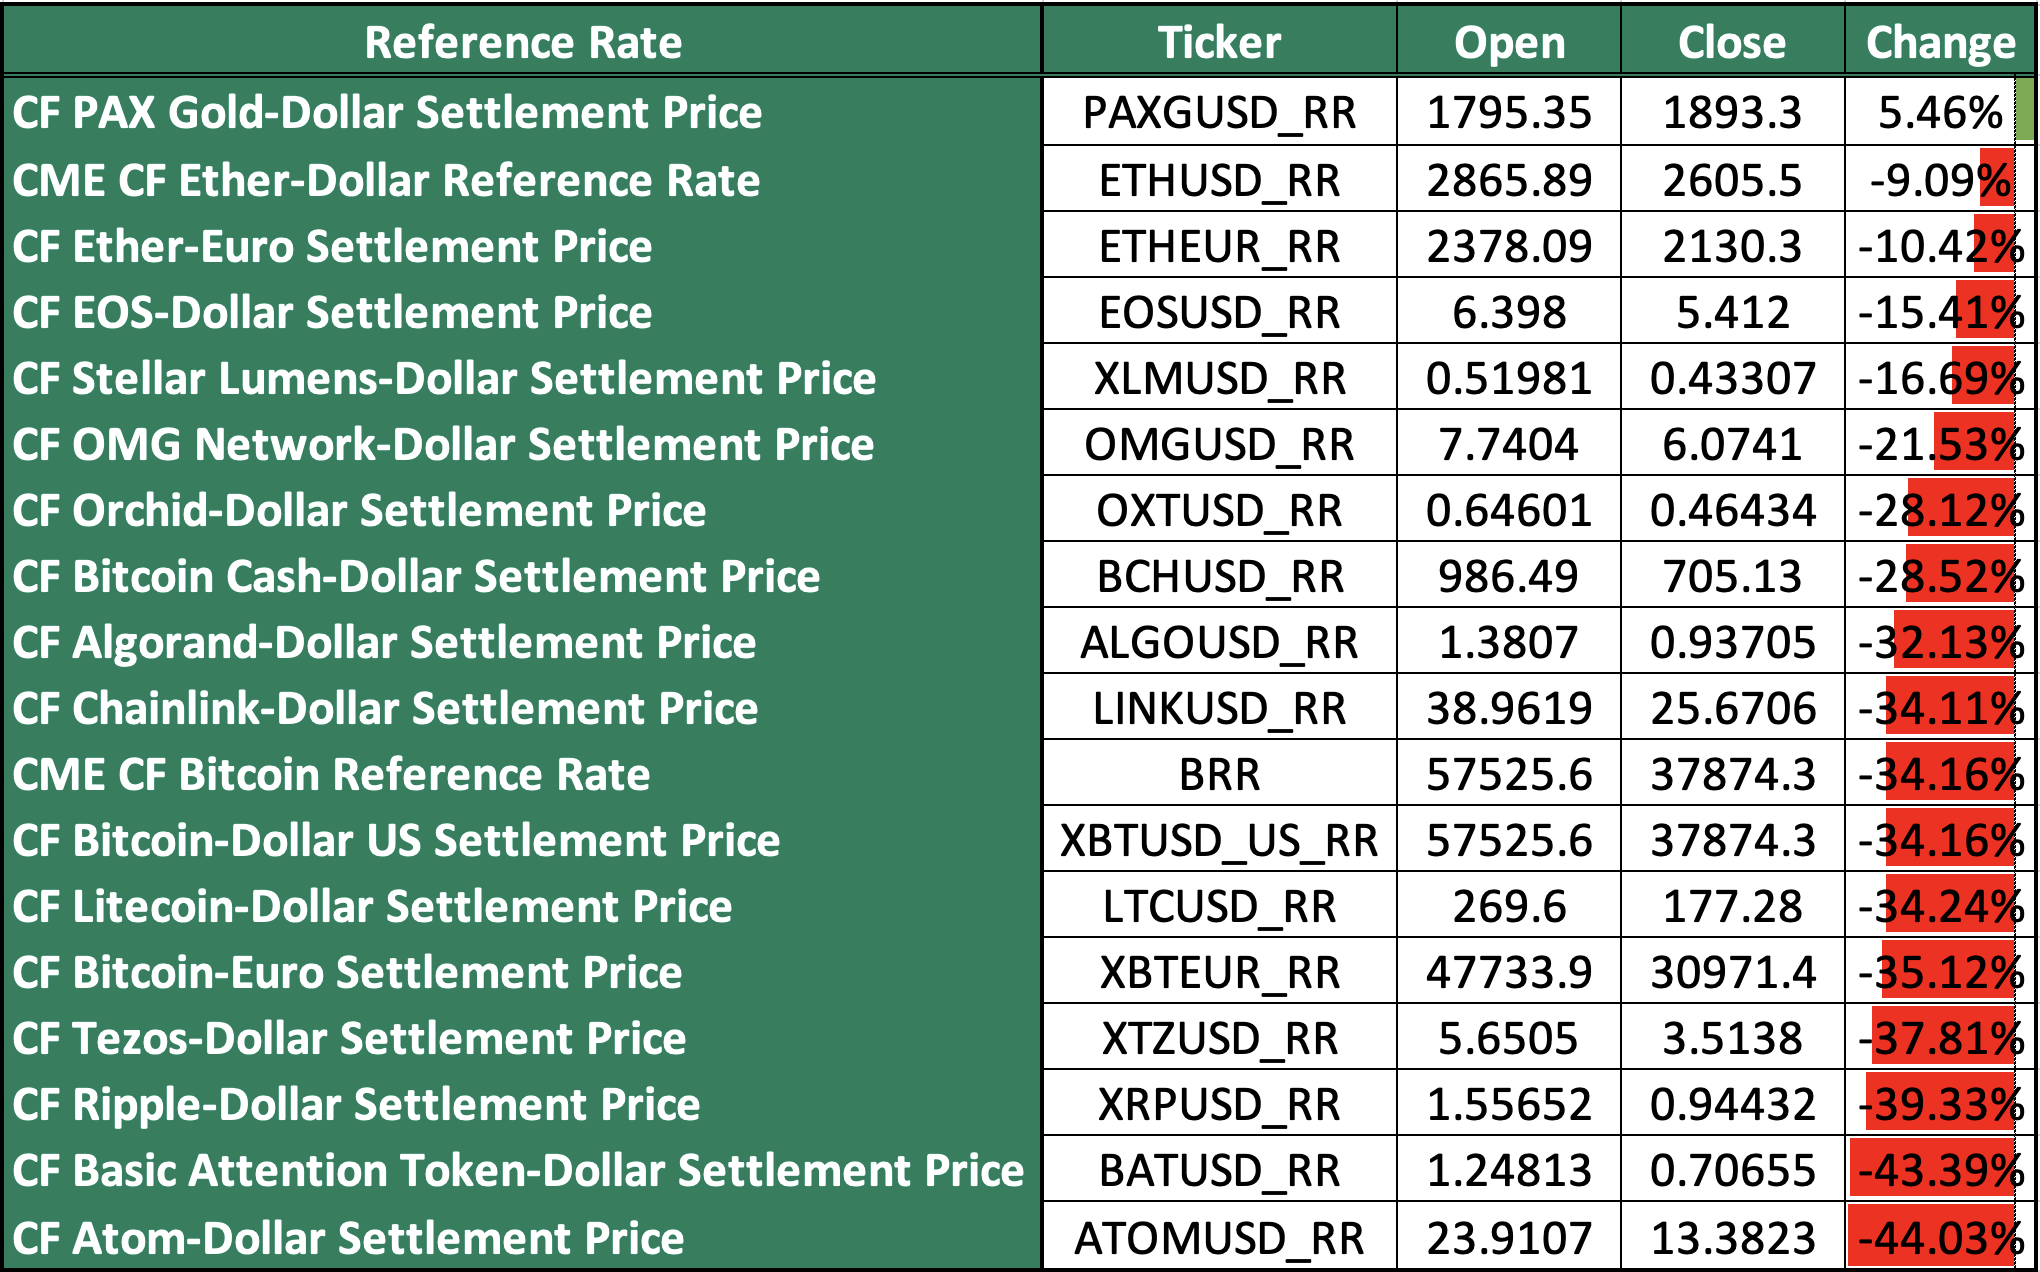 REF-RATE-RETURNS-MAY2021-LARGE